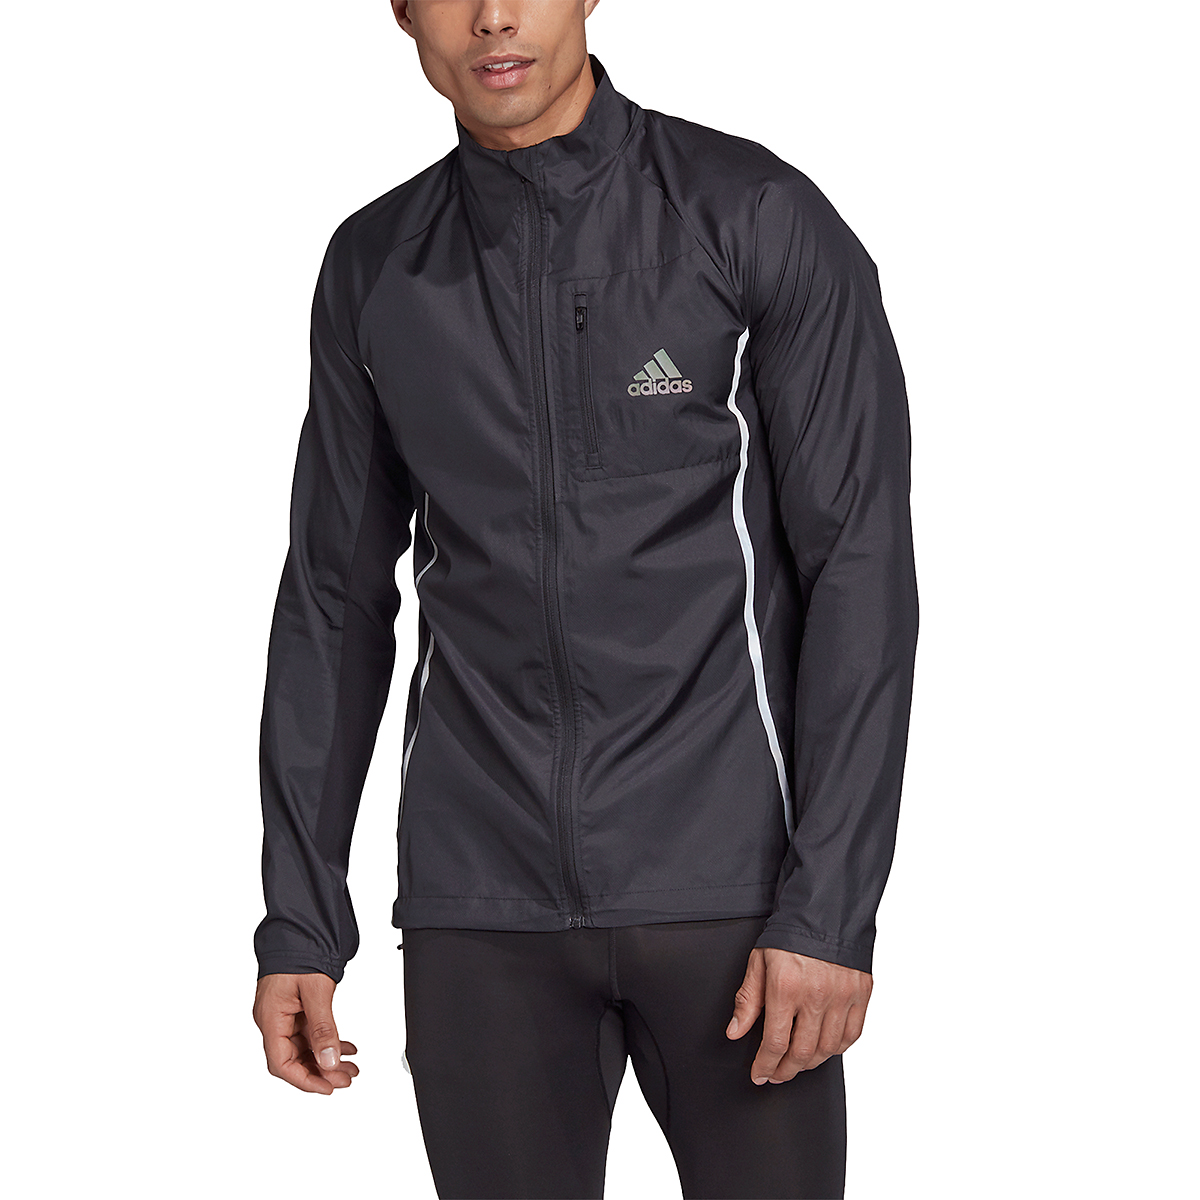 Men's Adidas Runner Night Ready Jacket - Color: Black - Size: S, Black, large, image 1